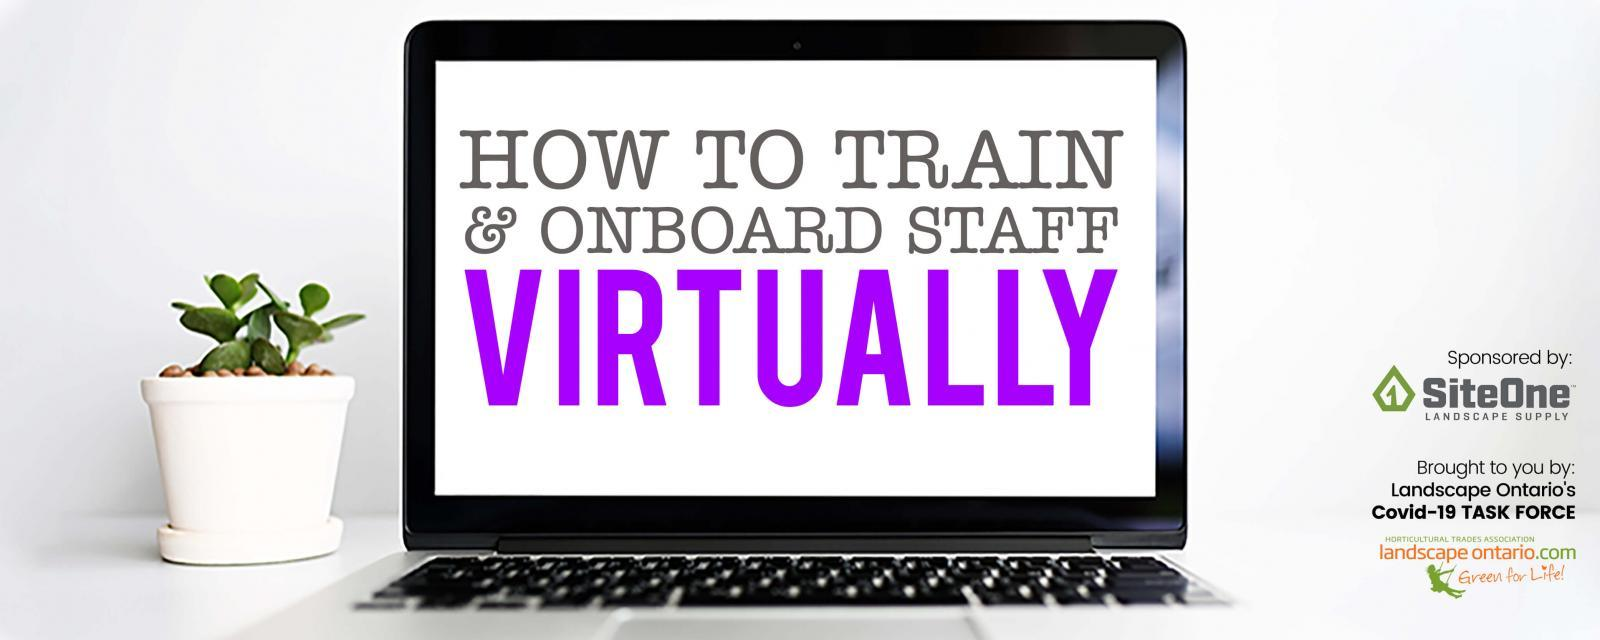 how to train and onboard staff virtually